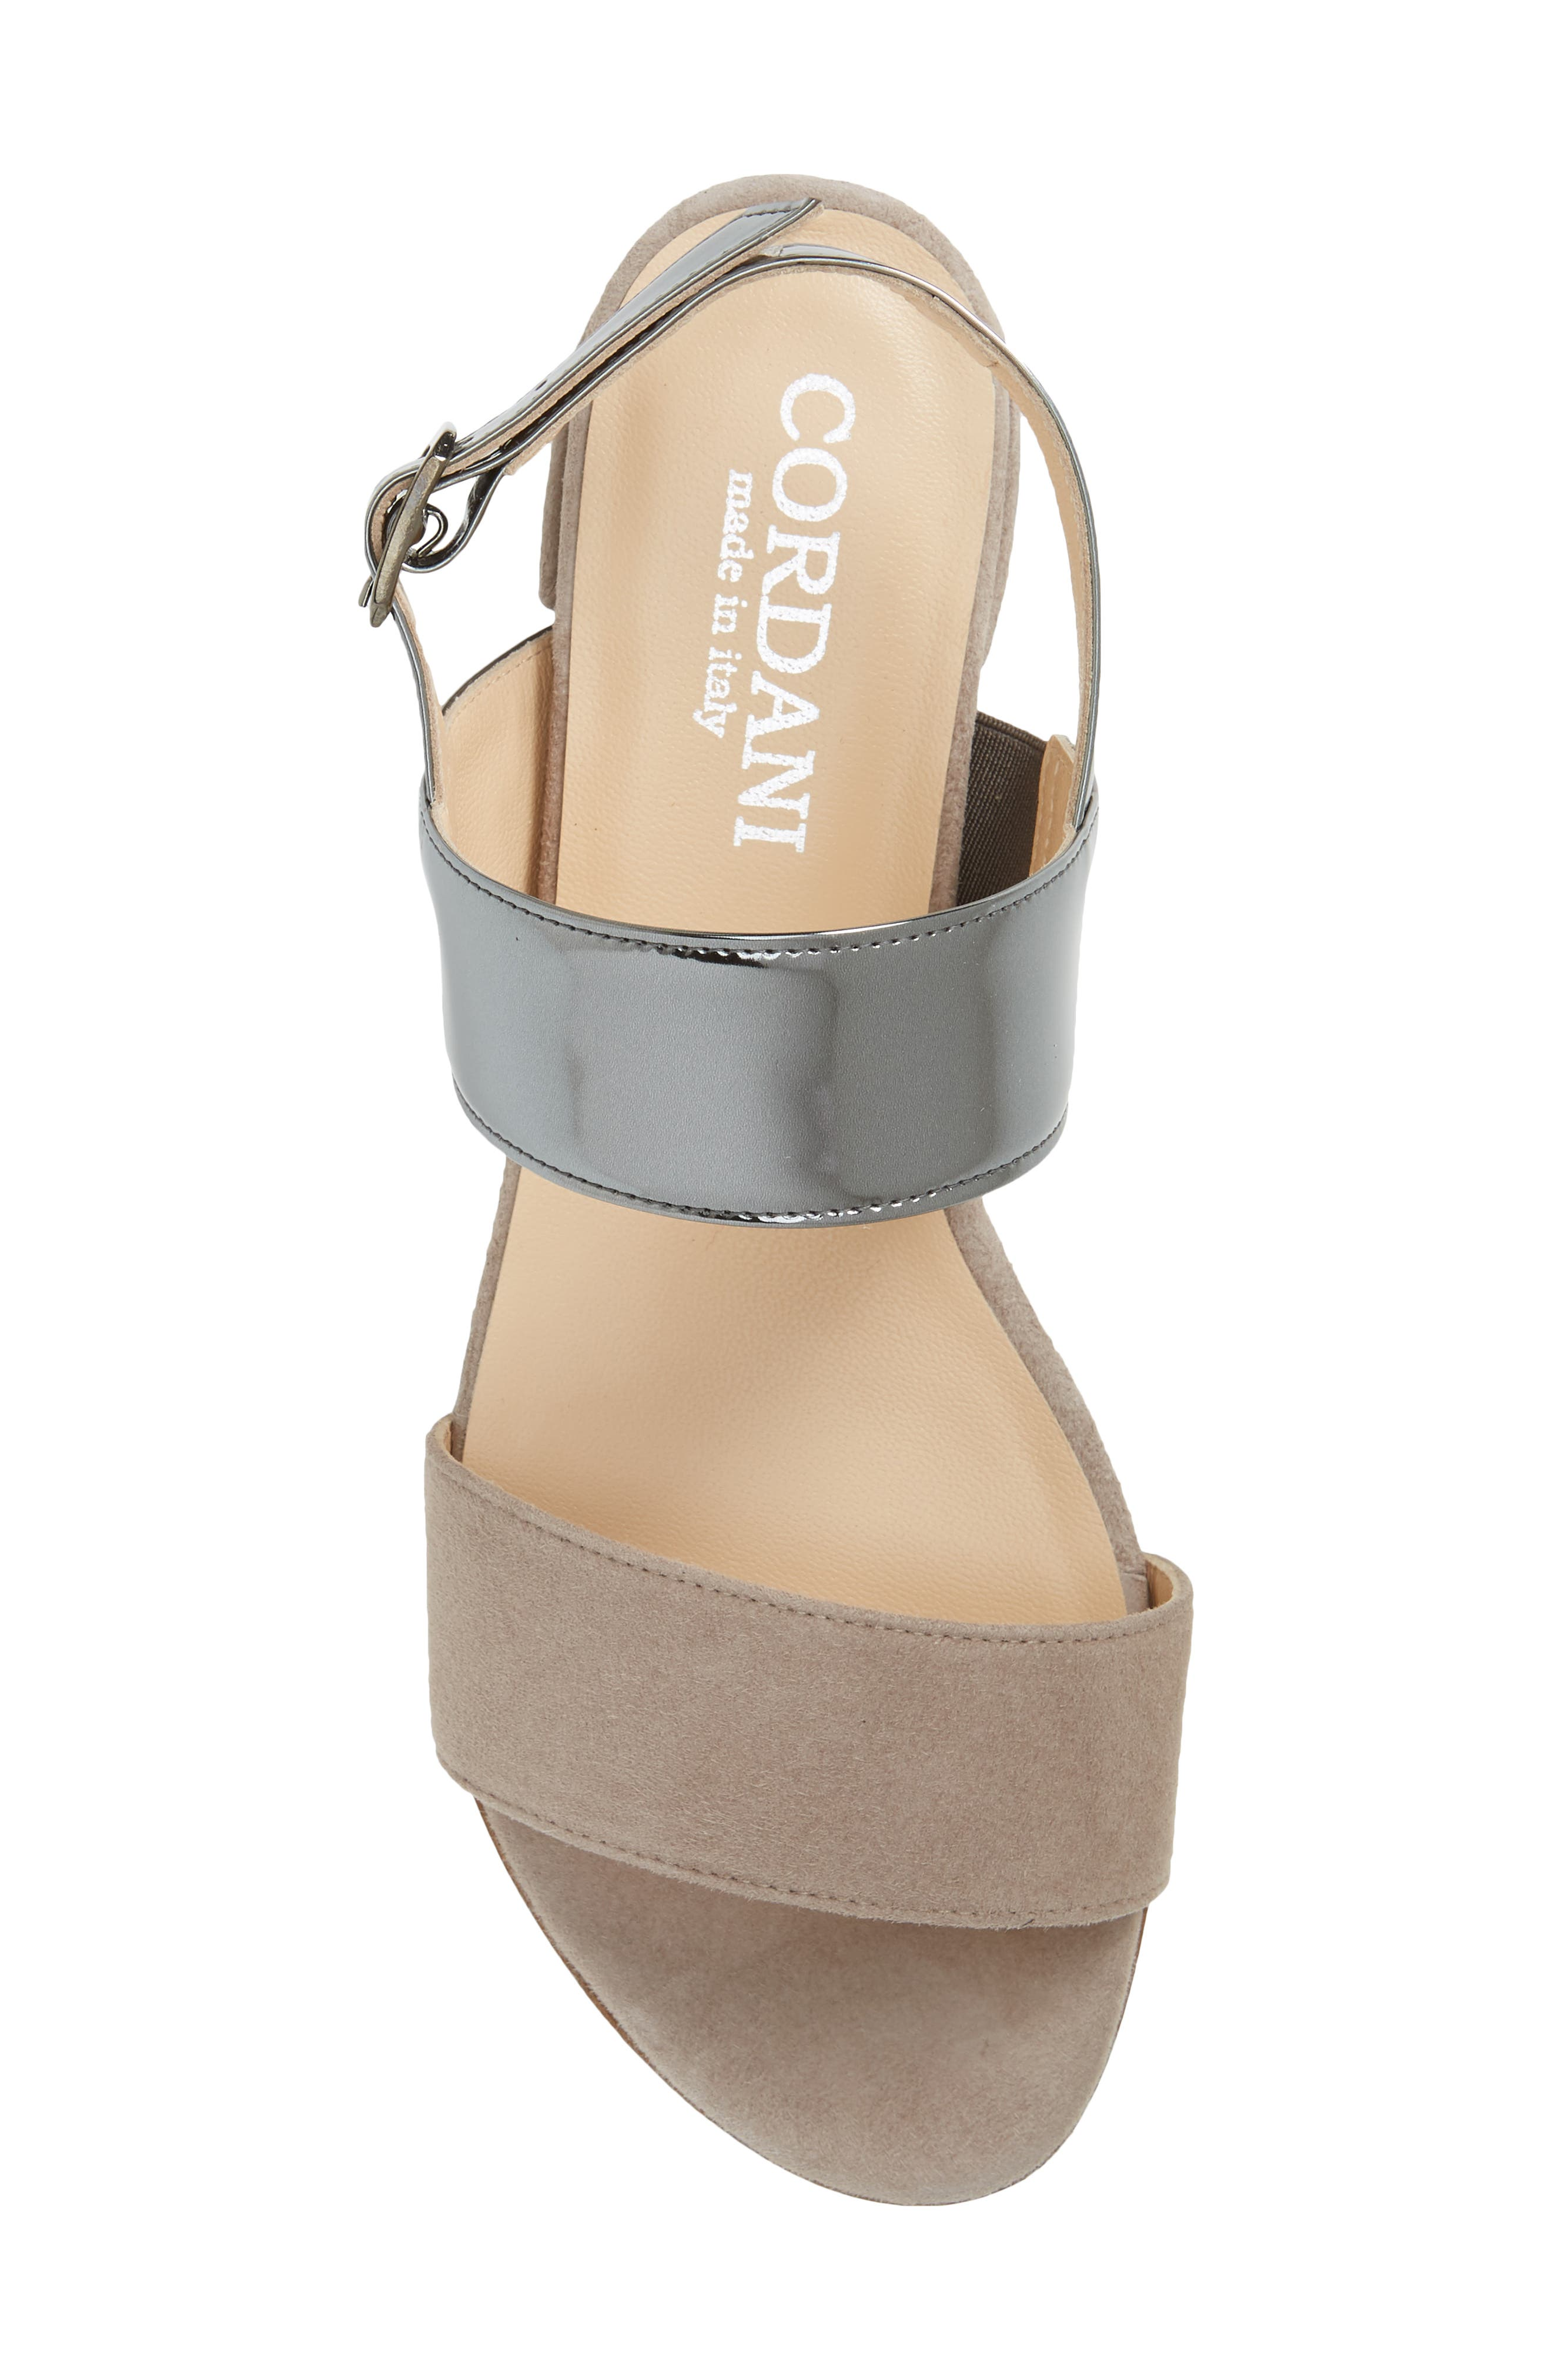 Prudence Sandal,                             Alternate thumbnail 5, color,                             GREY SUEDE